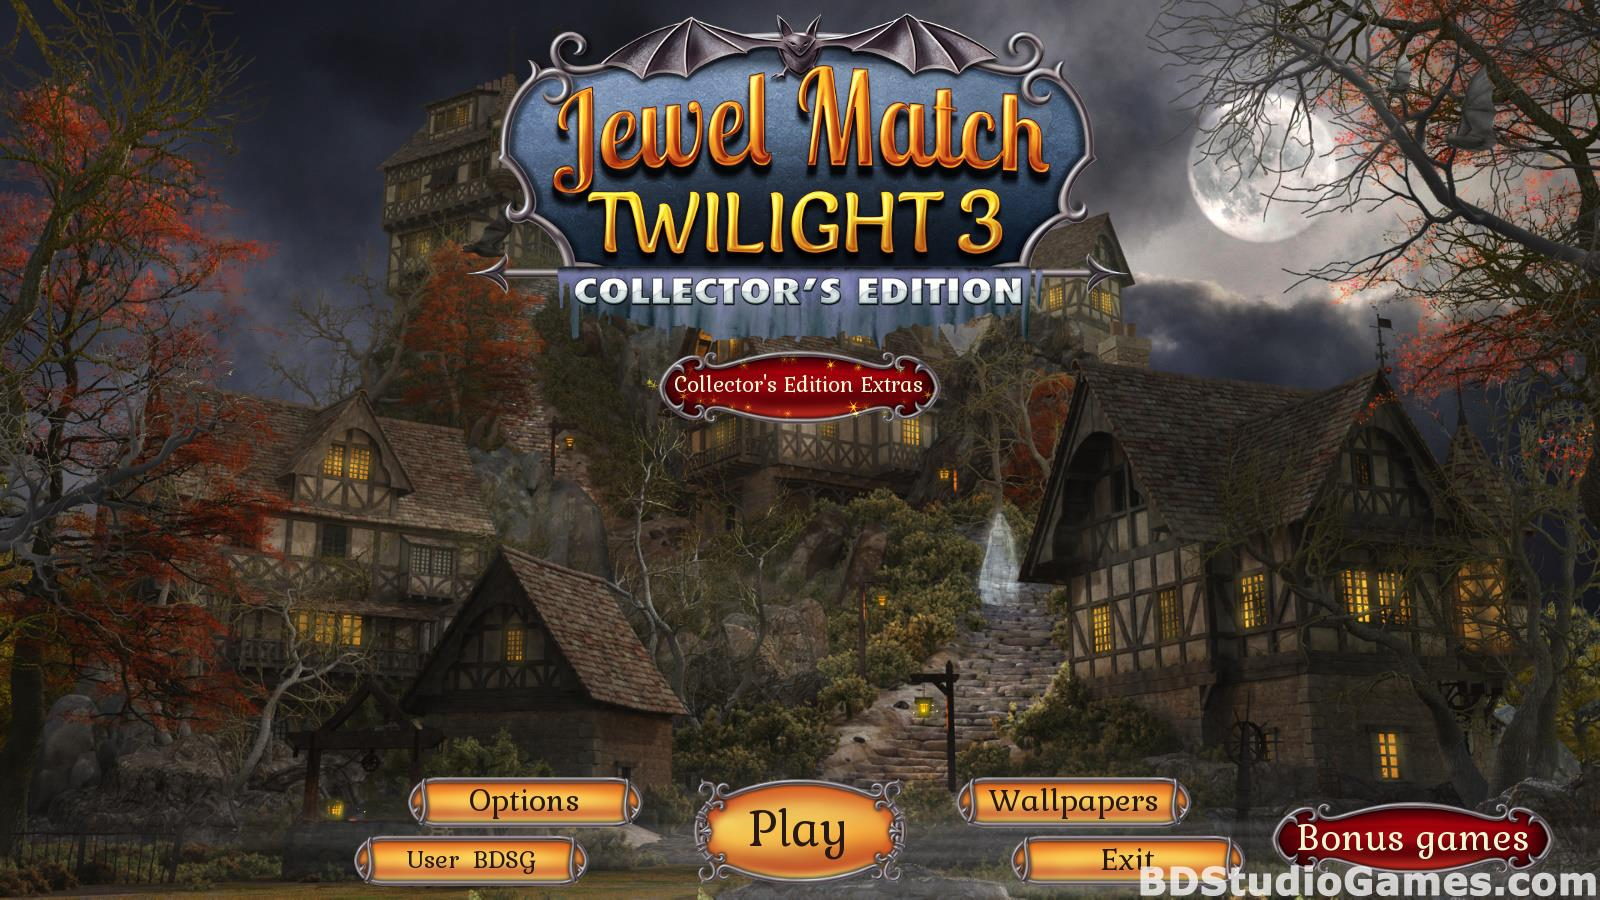 Jewel Match Twilight 3 Collector's Edition Free Download Screenshots 01